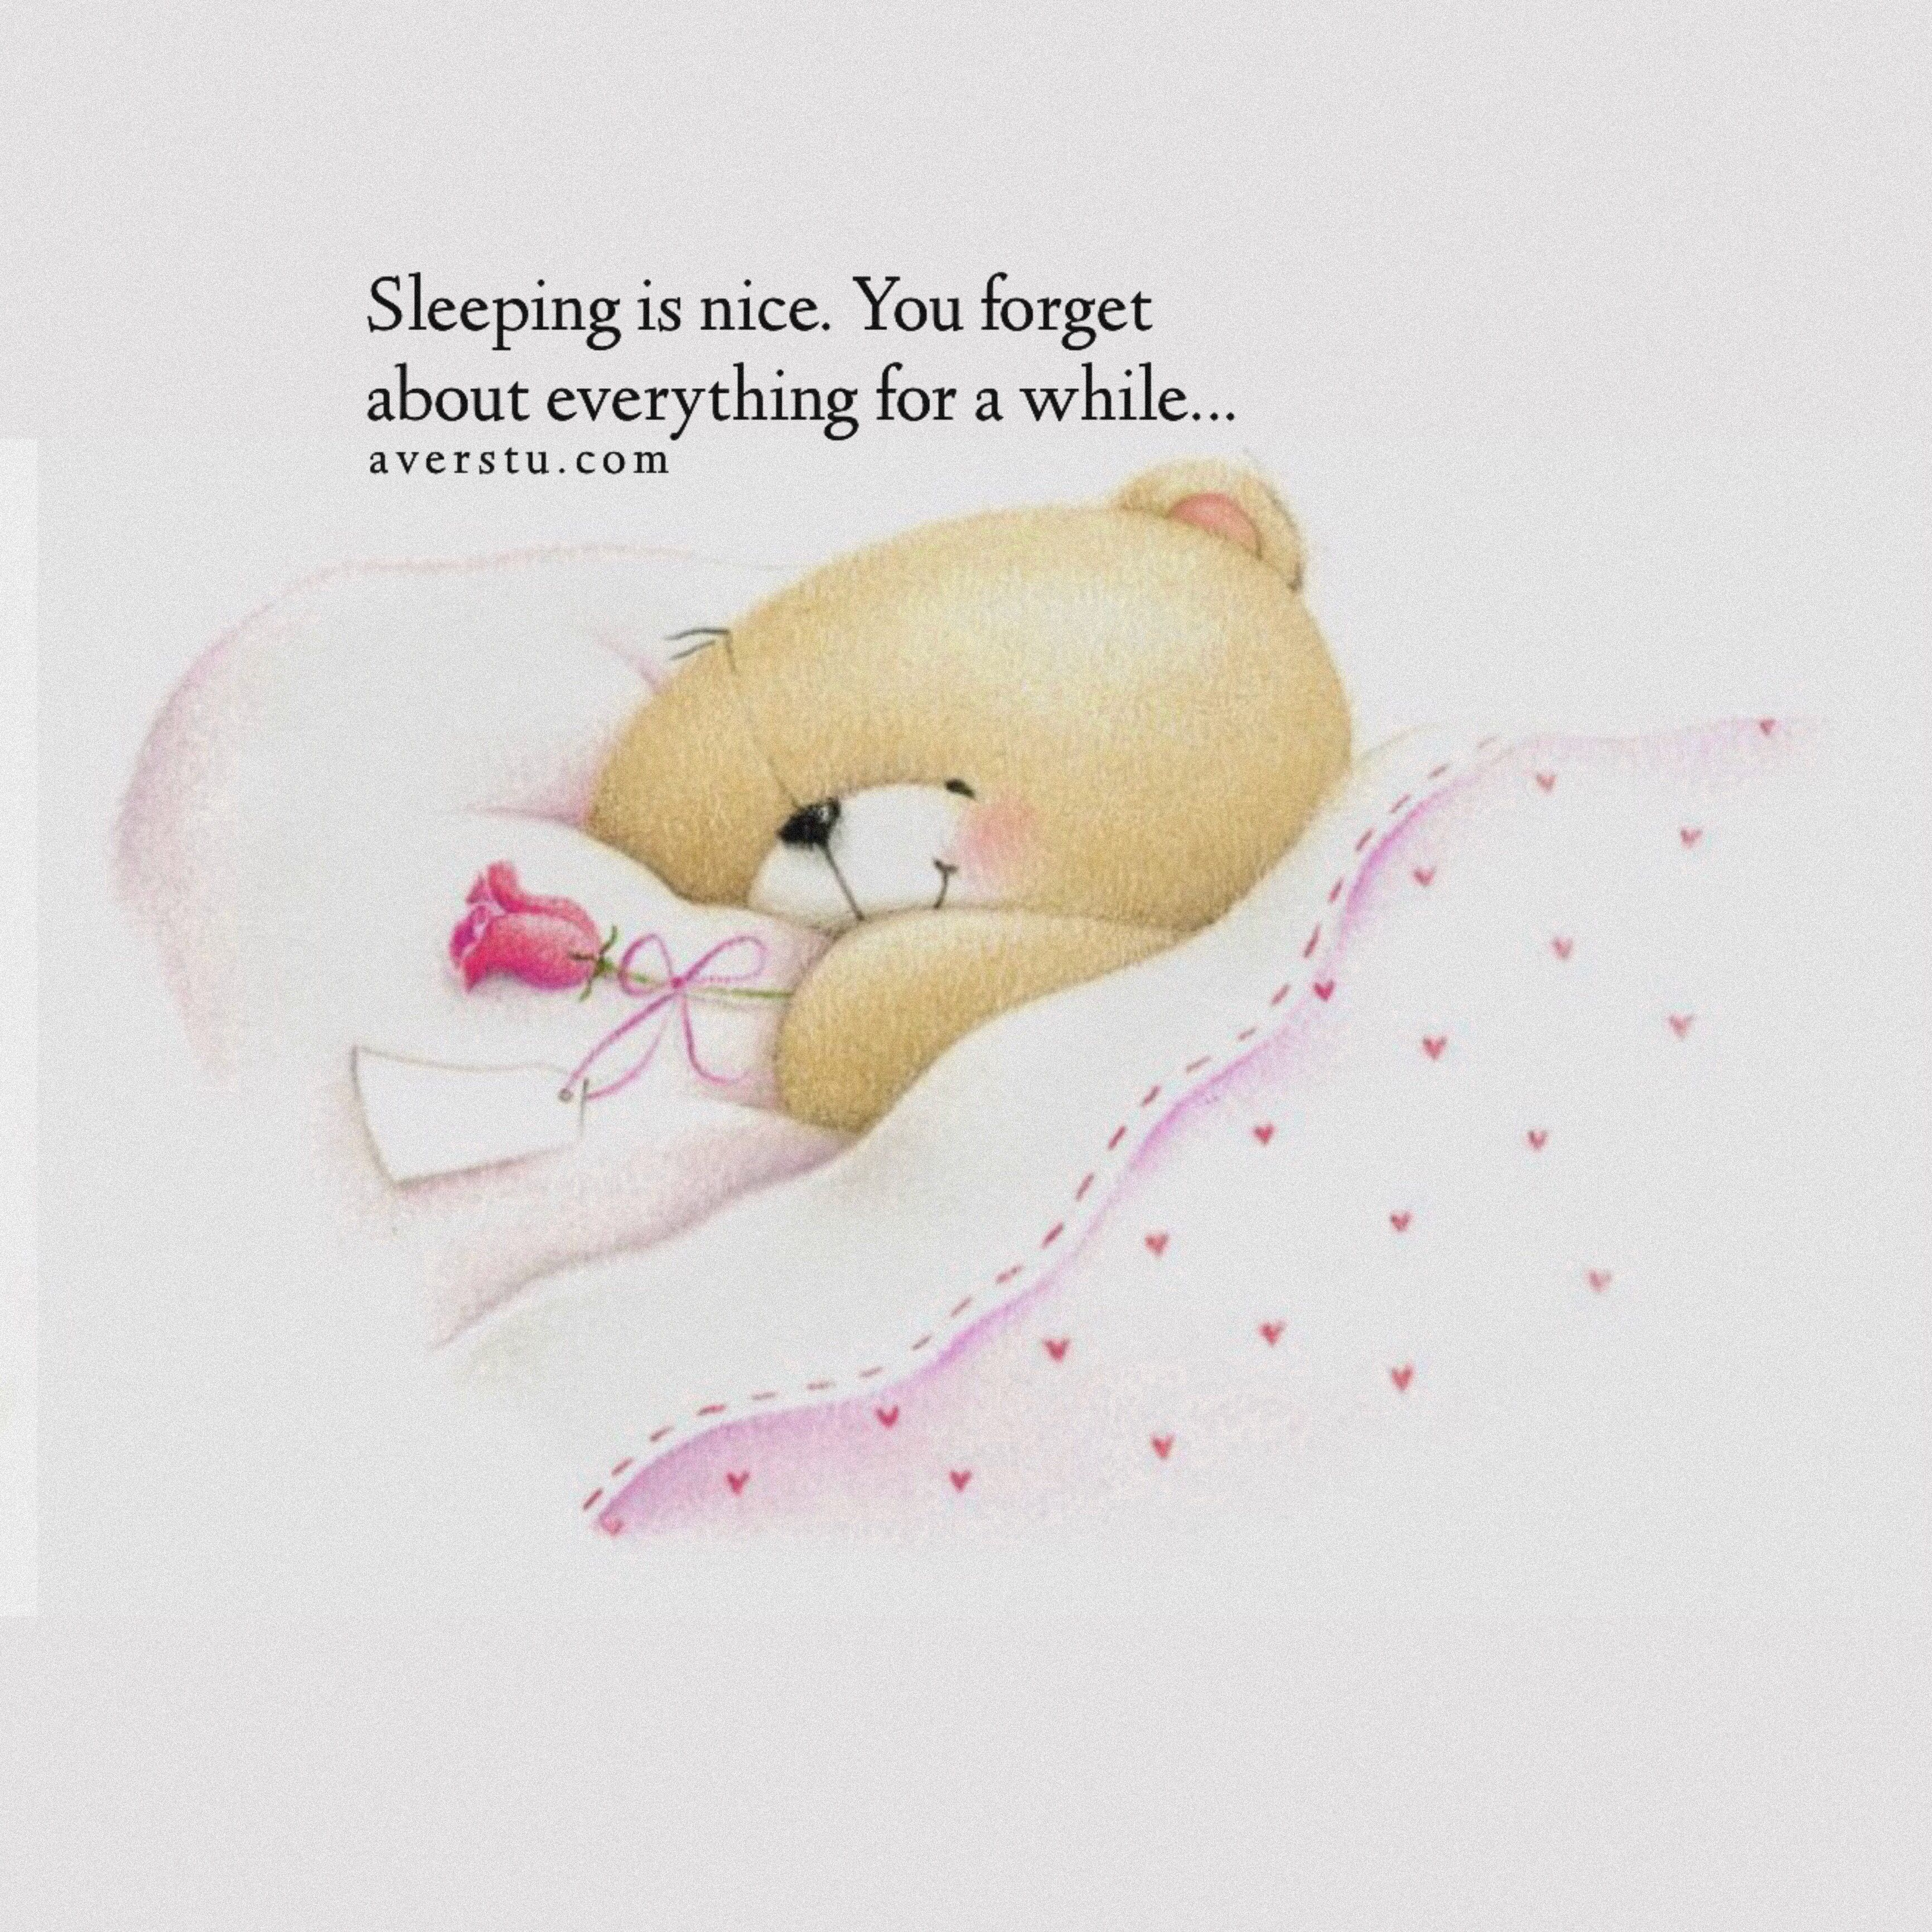 150 Top Self Love Quotes To Always Remember Part 1 The Ultimate Inspirational Life Quotes Self Love Quotes Forever Friends Bear Cute Teddy Bear Pics